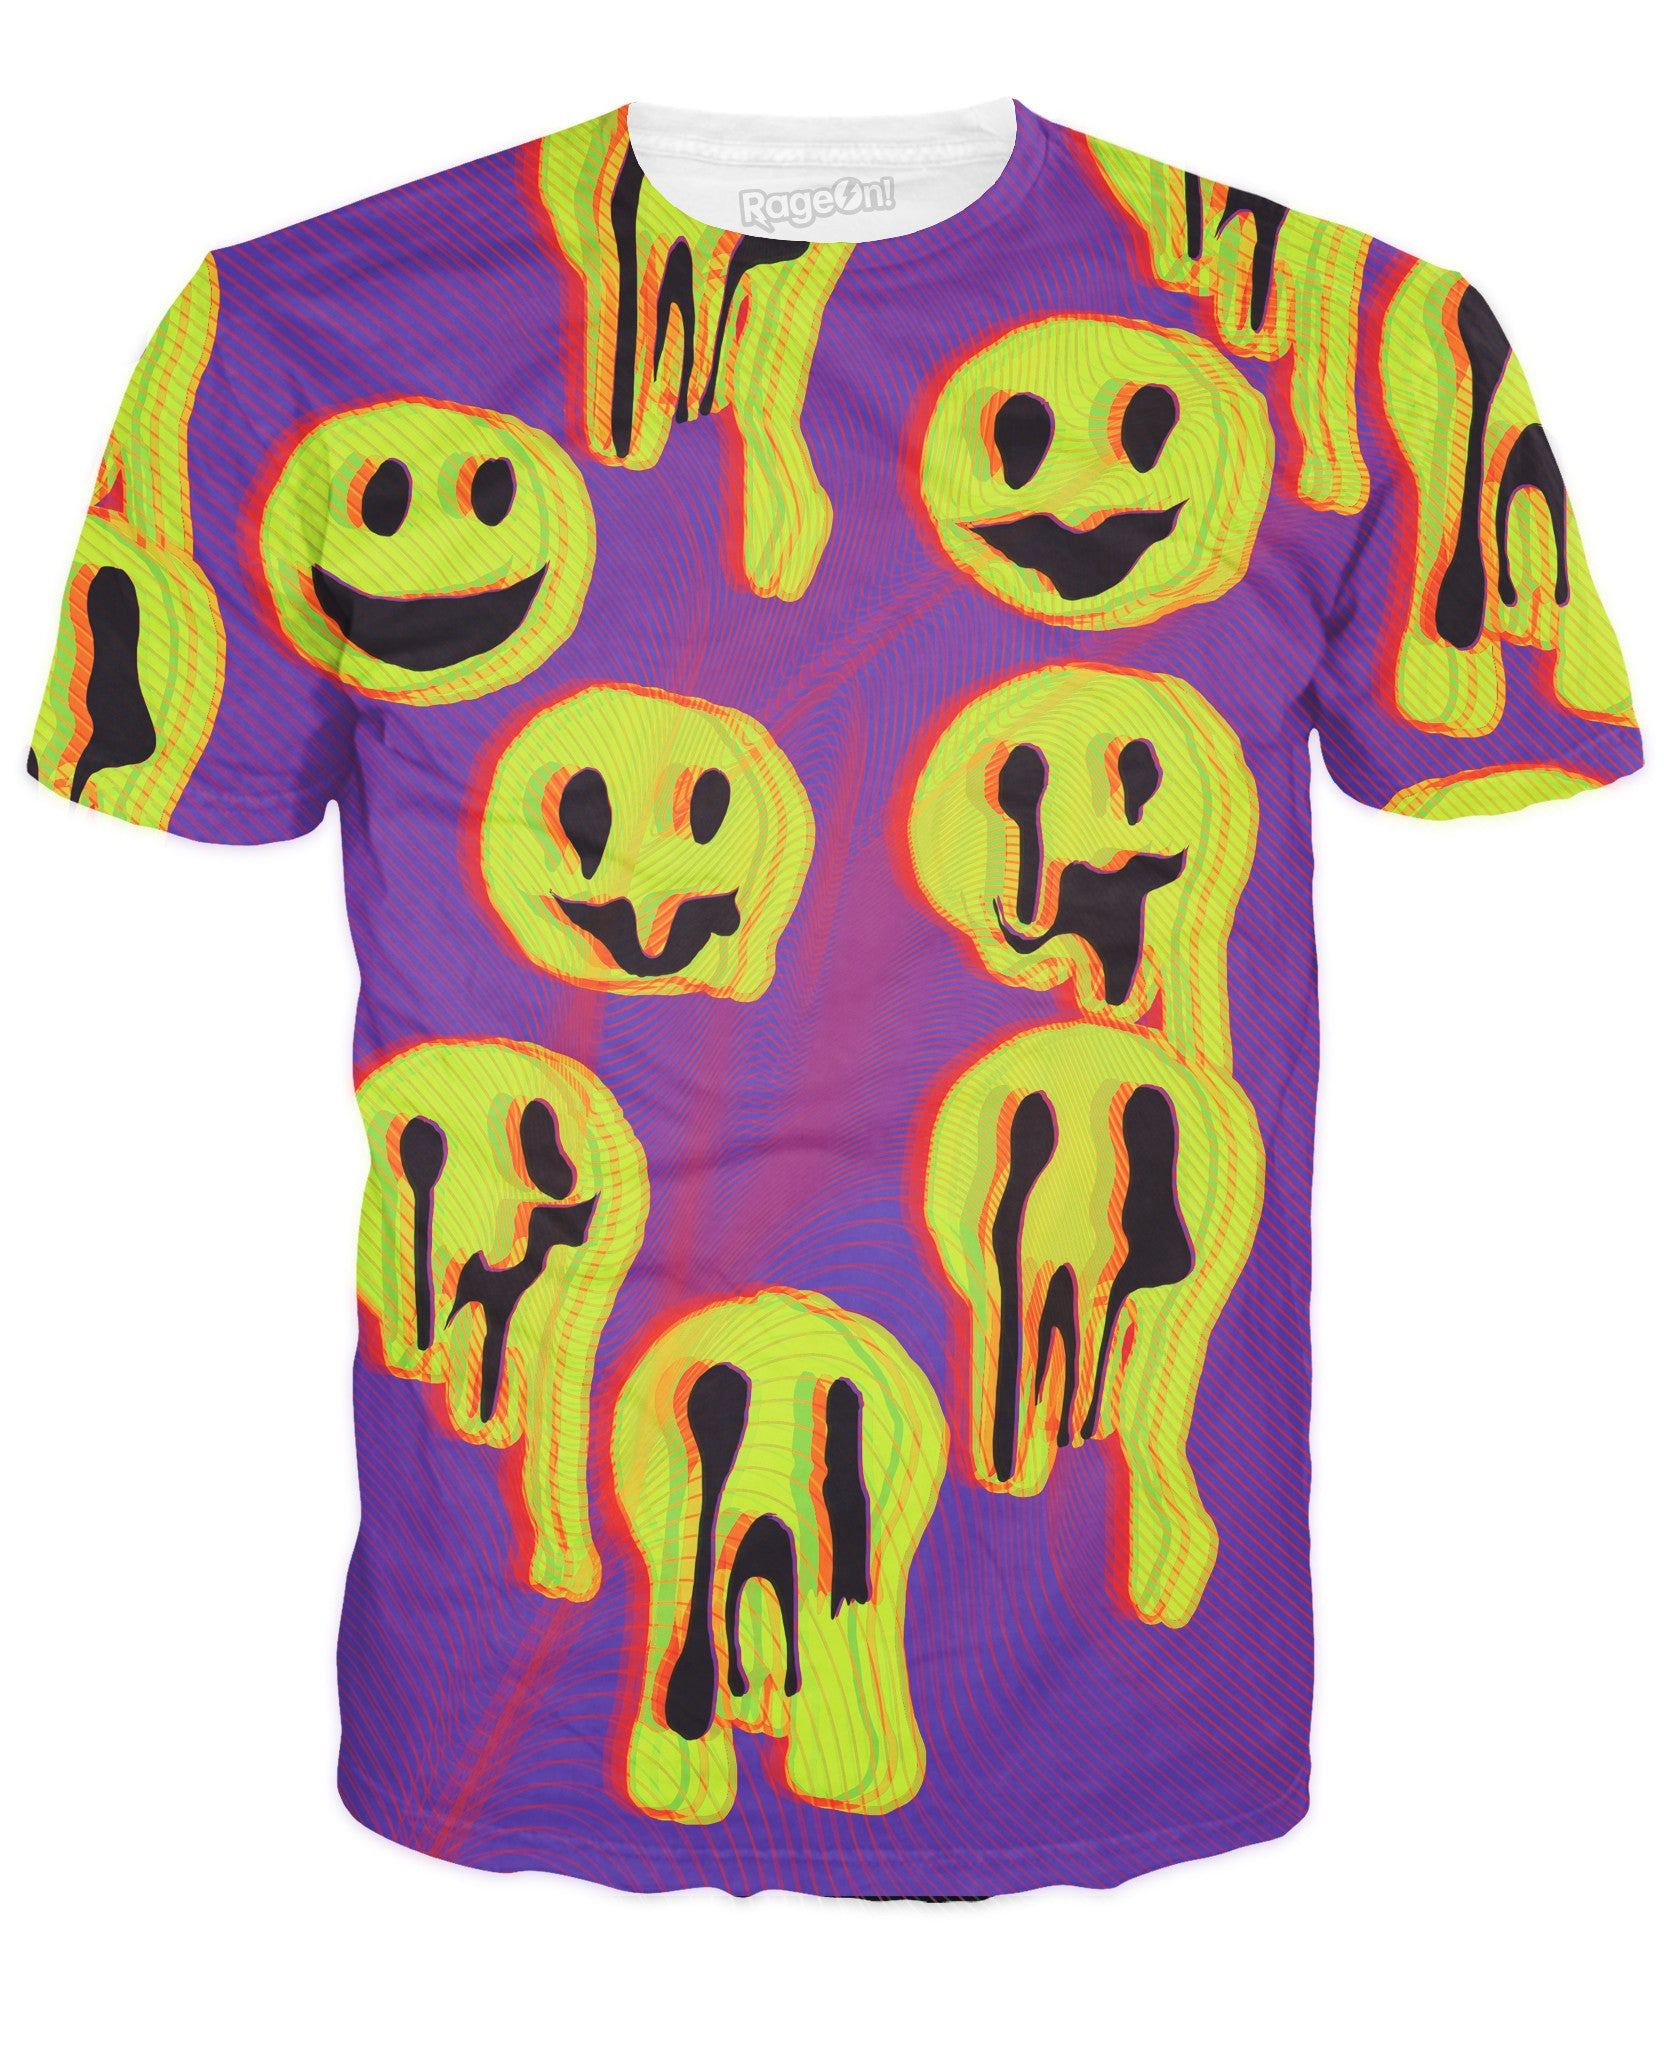 Acid Wax Smile T-Shirt